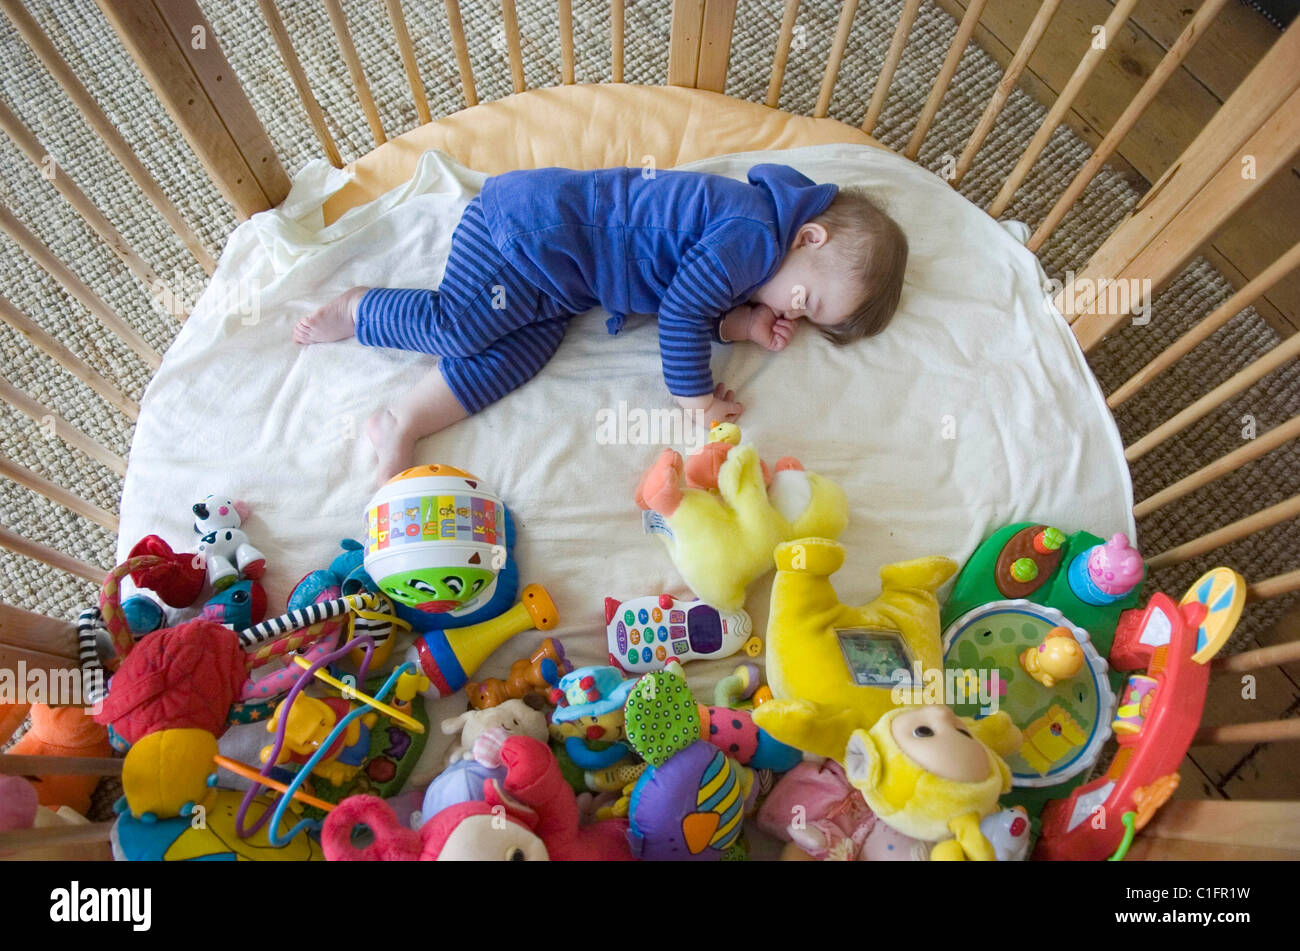 One Year Old Baby Girl Asleep In Her Playpen Surrounded By